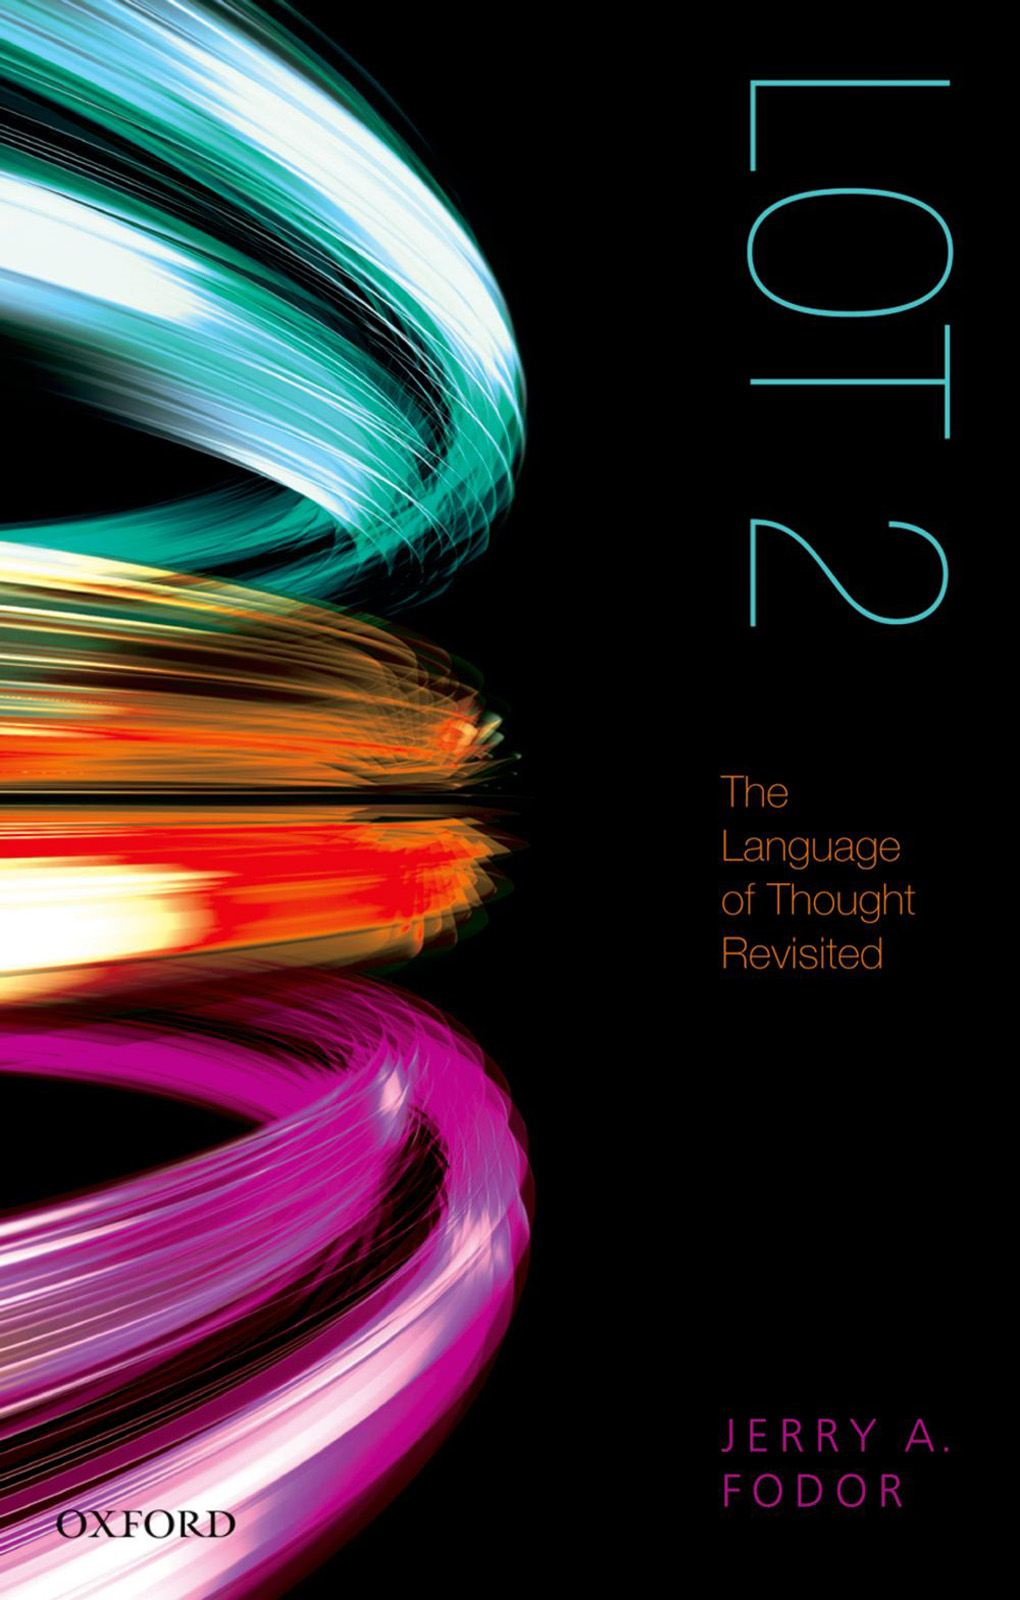 LOT 2 : The Language of Thought Revisited